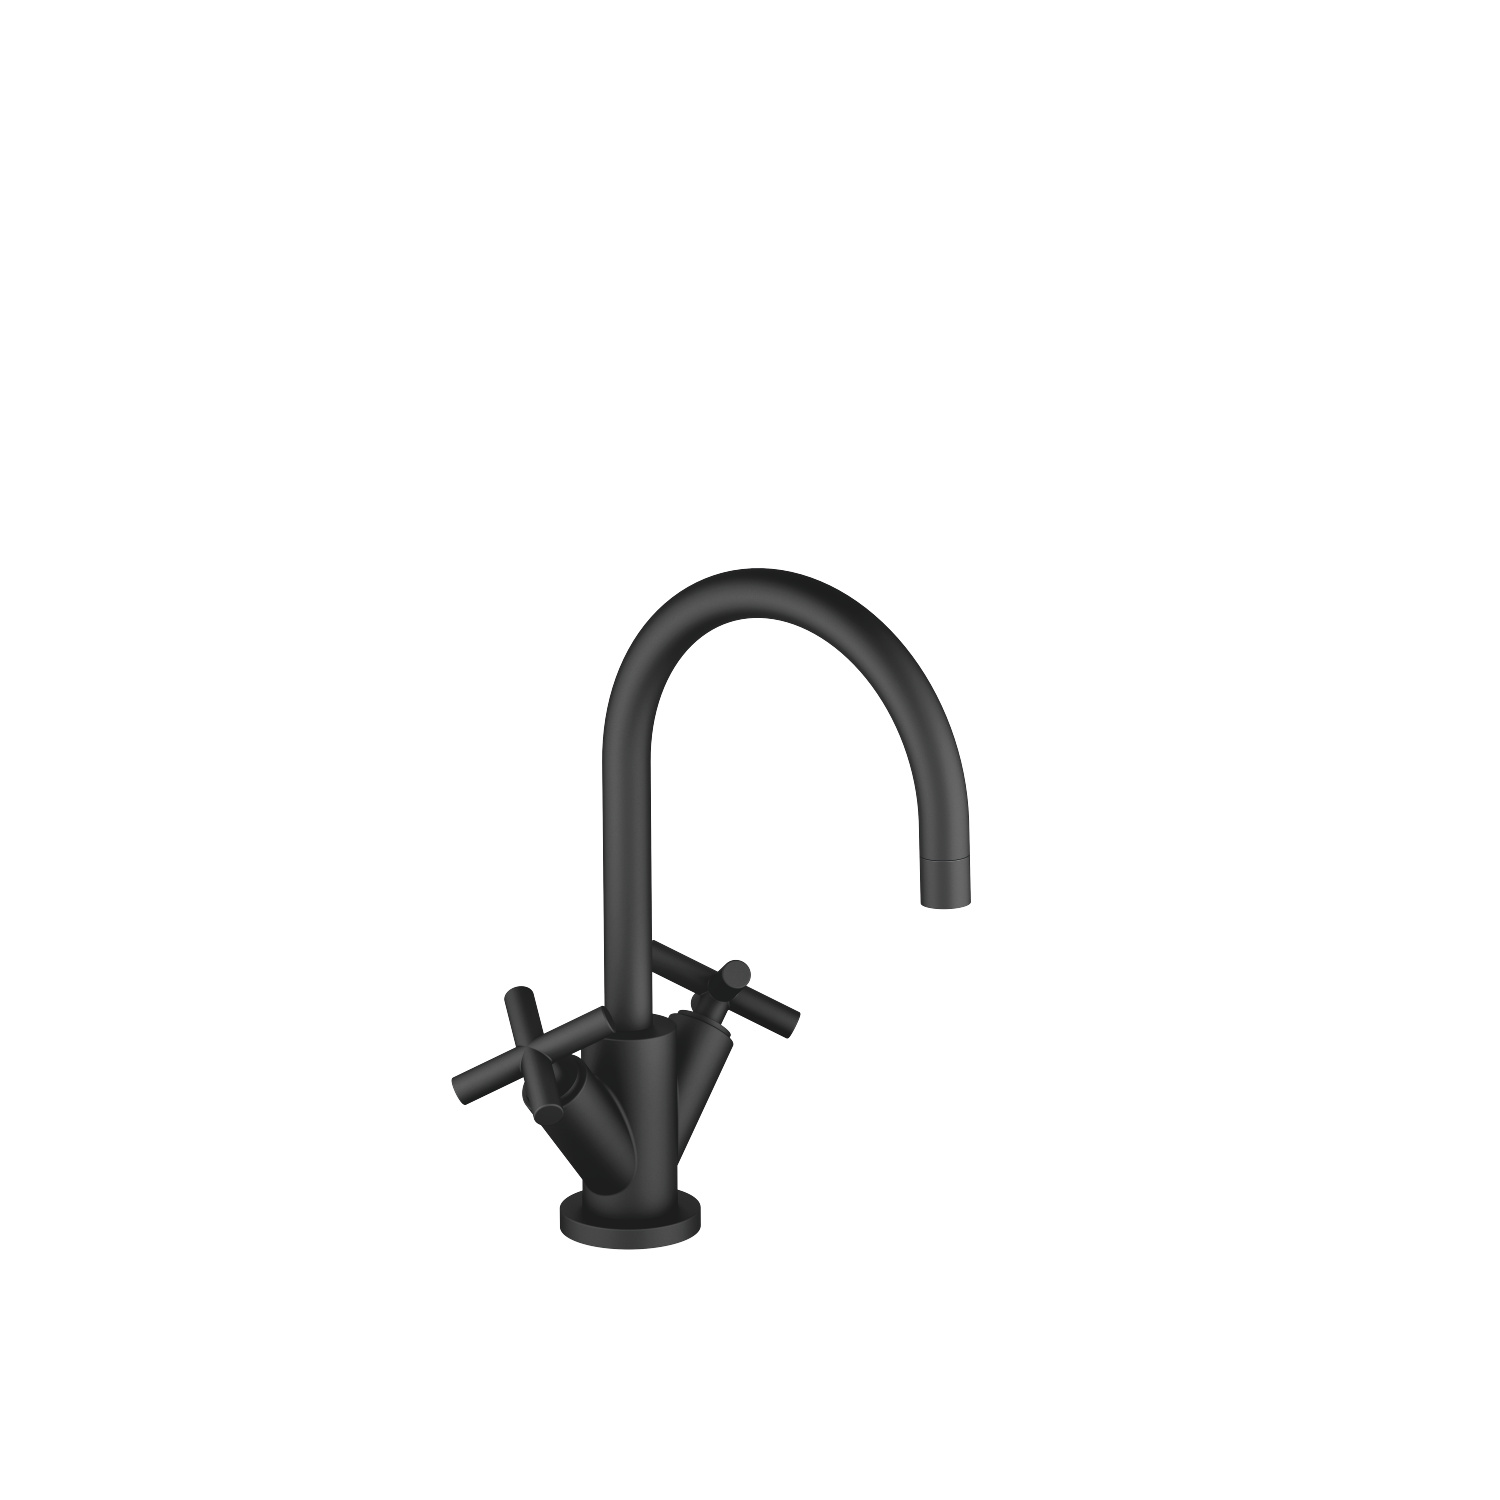 Single-hole basin mixer with pop-up waste - matt black